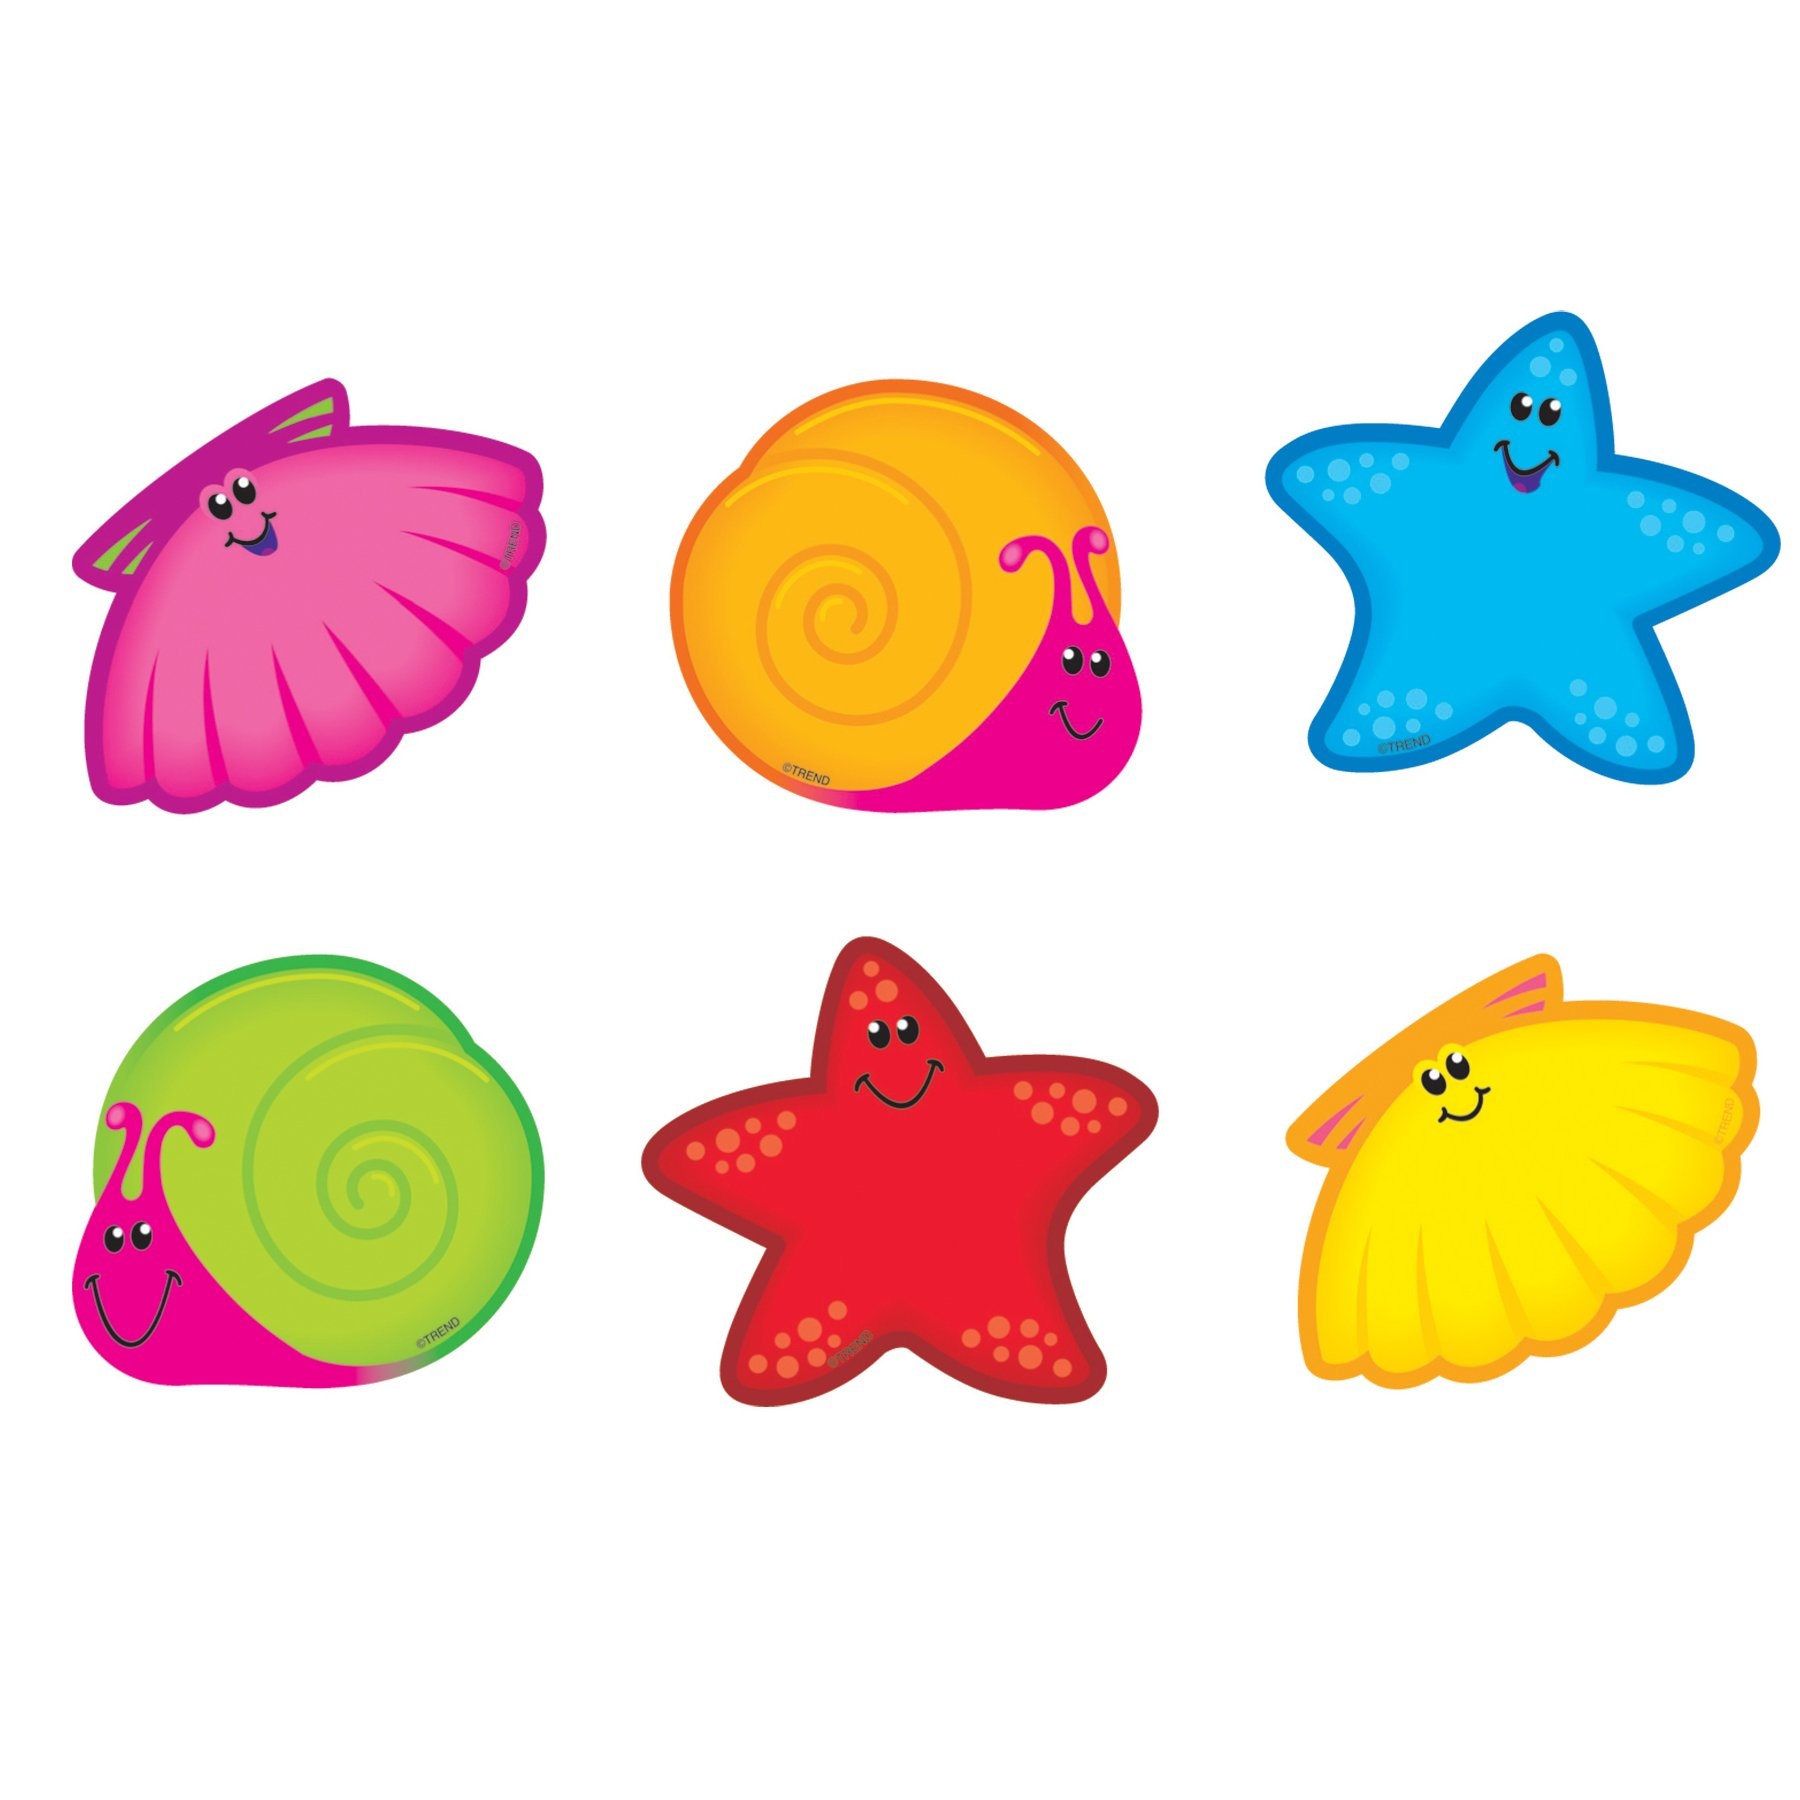 TREND enterprises, Inc. T-10806BN Seashore Friends Mini Accents Variety Pack, 36 Per Pack, 6 Packs by TREND Enterprises